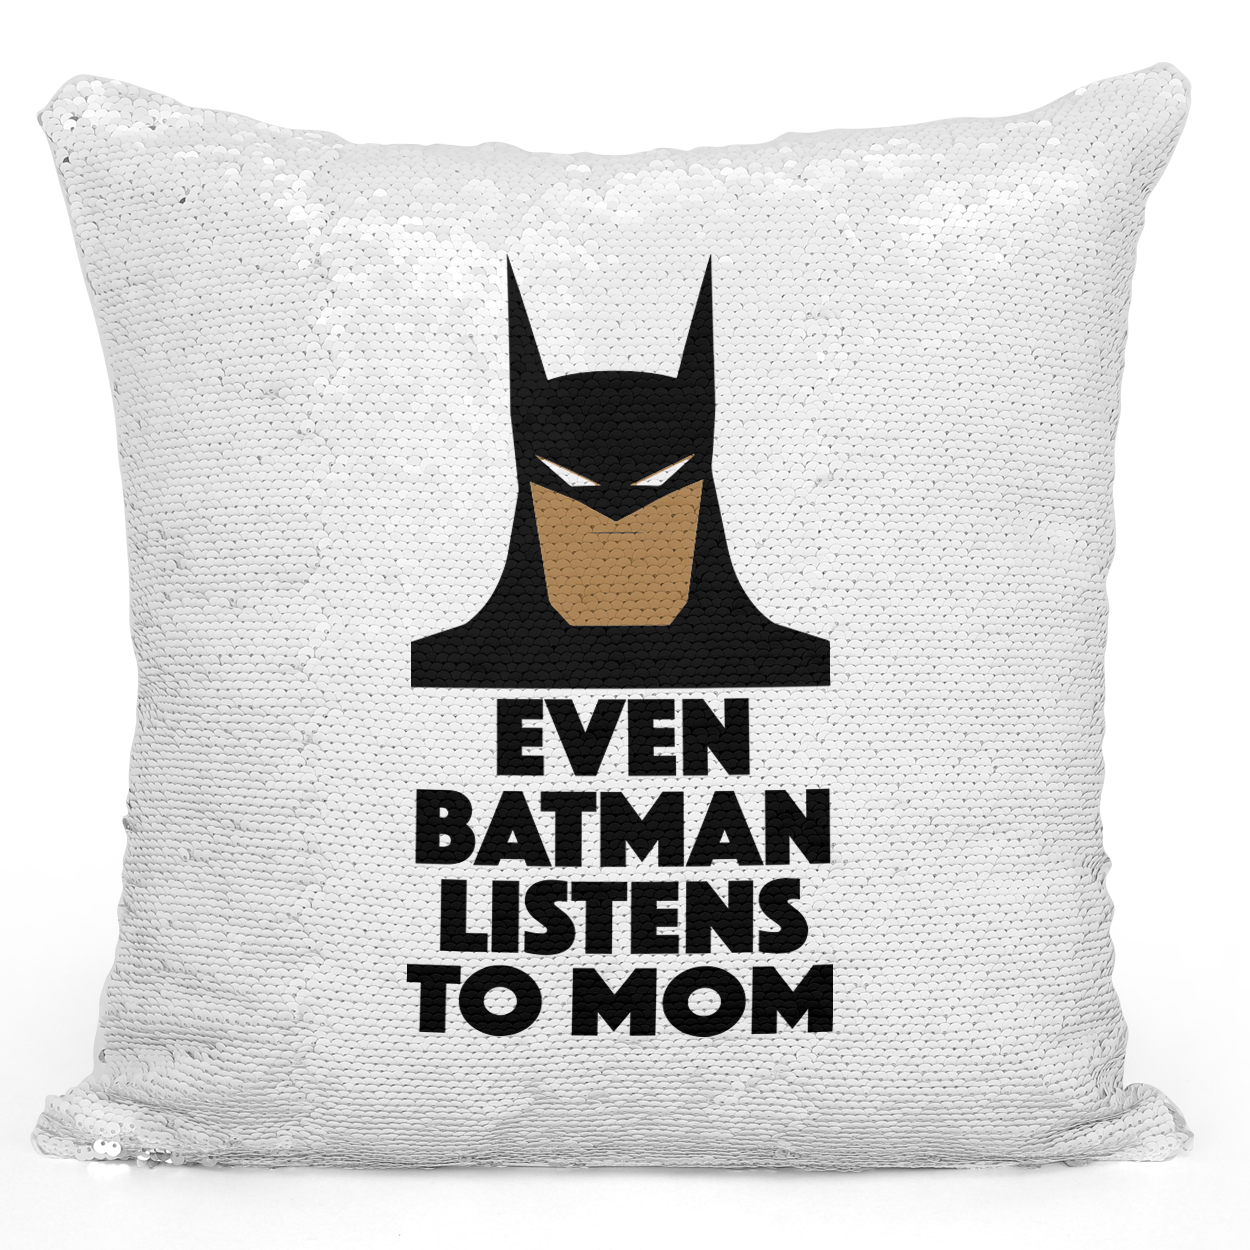 Sequin Pillow Magic Mermaid Throw Pillow Even Batman Listens To Mom Funny Superhero Pillow - Durable White 16 x 16 inch Square Home Office Decor Accent Pillow Loud Universe